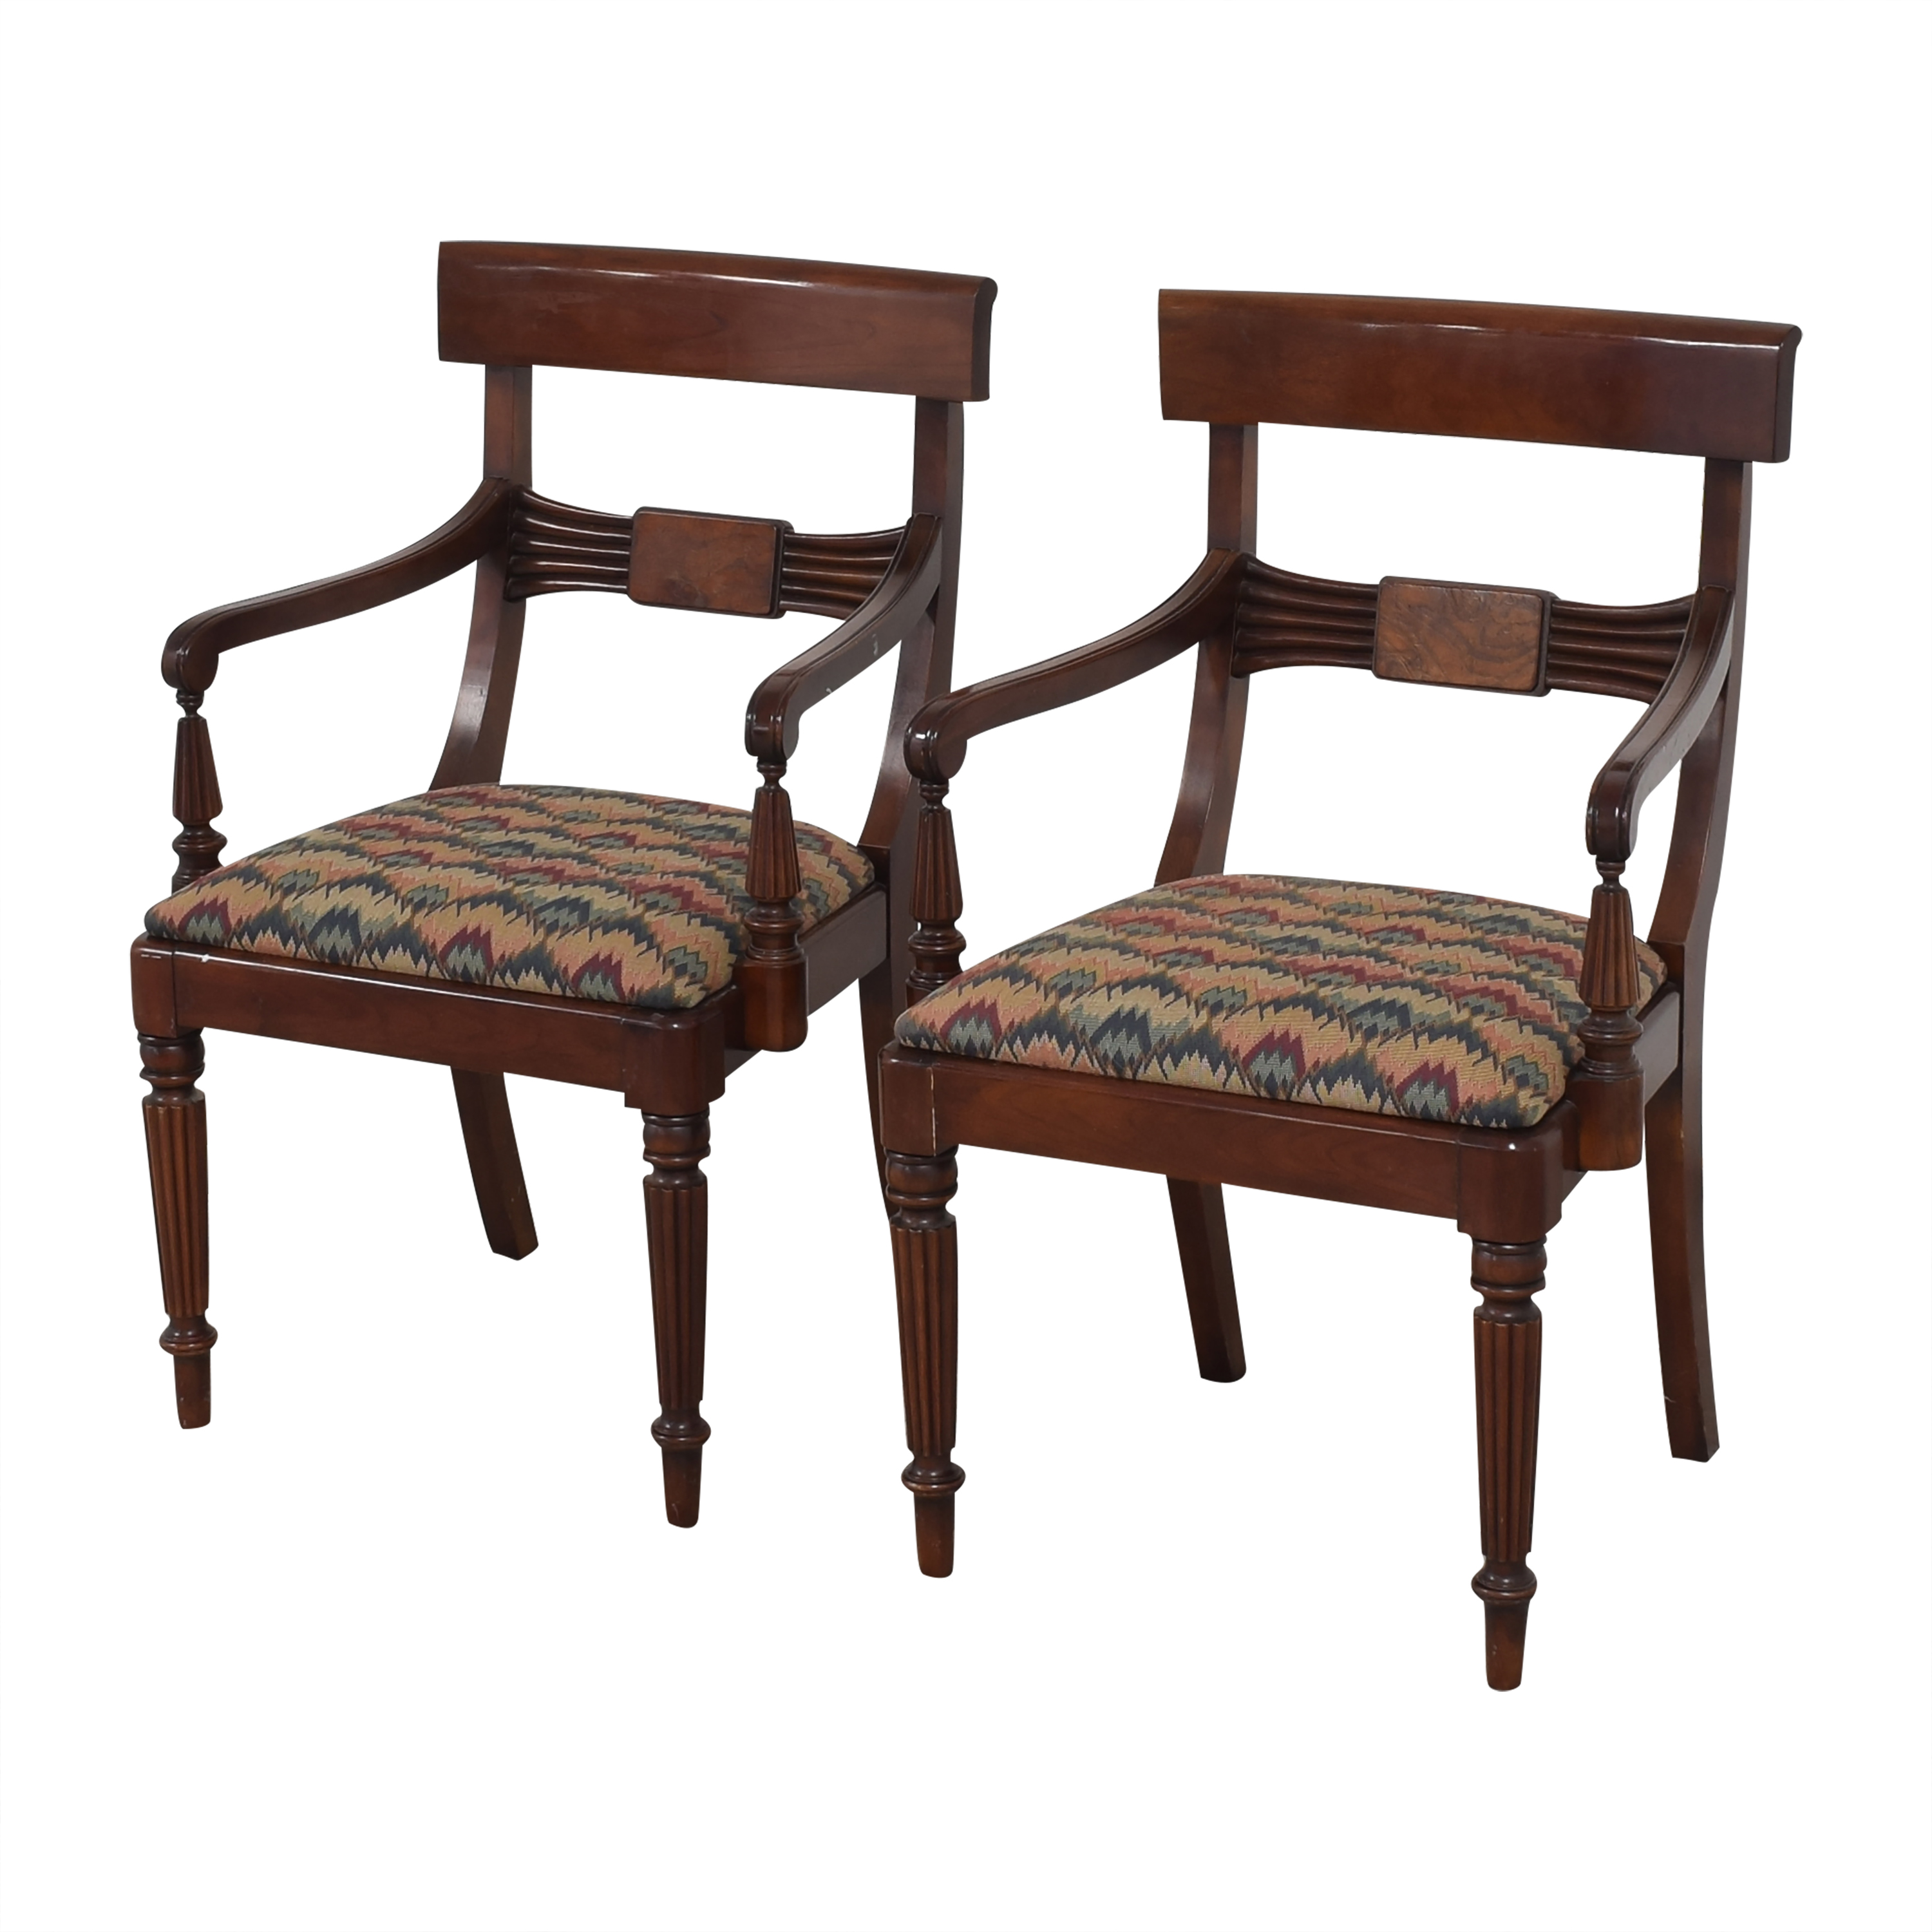 Statton Statton Dining Arm Chairs for sale